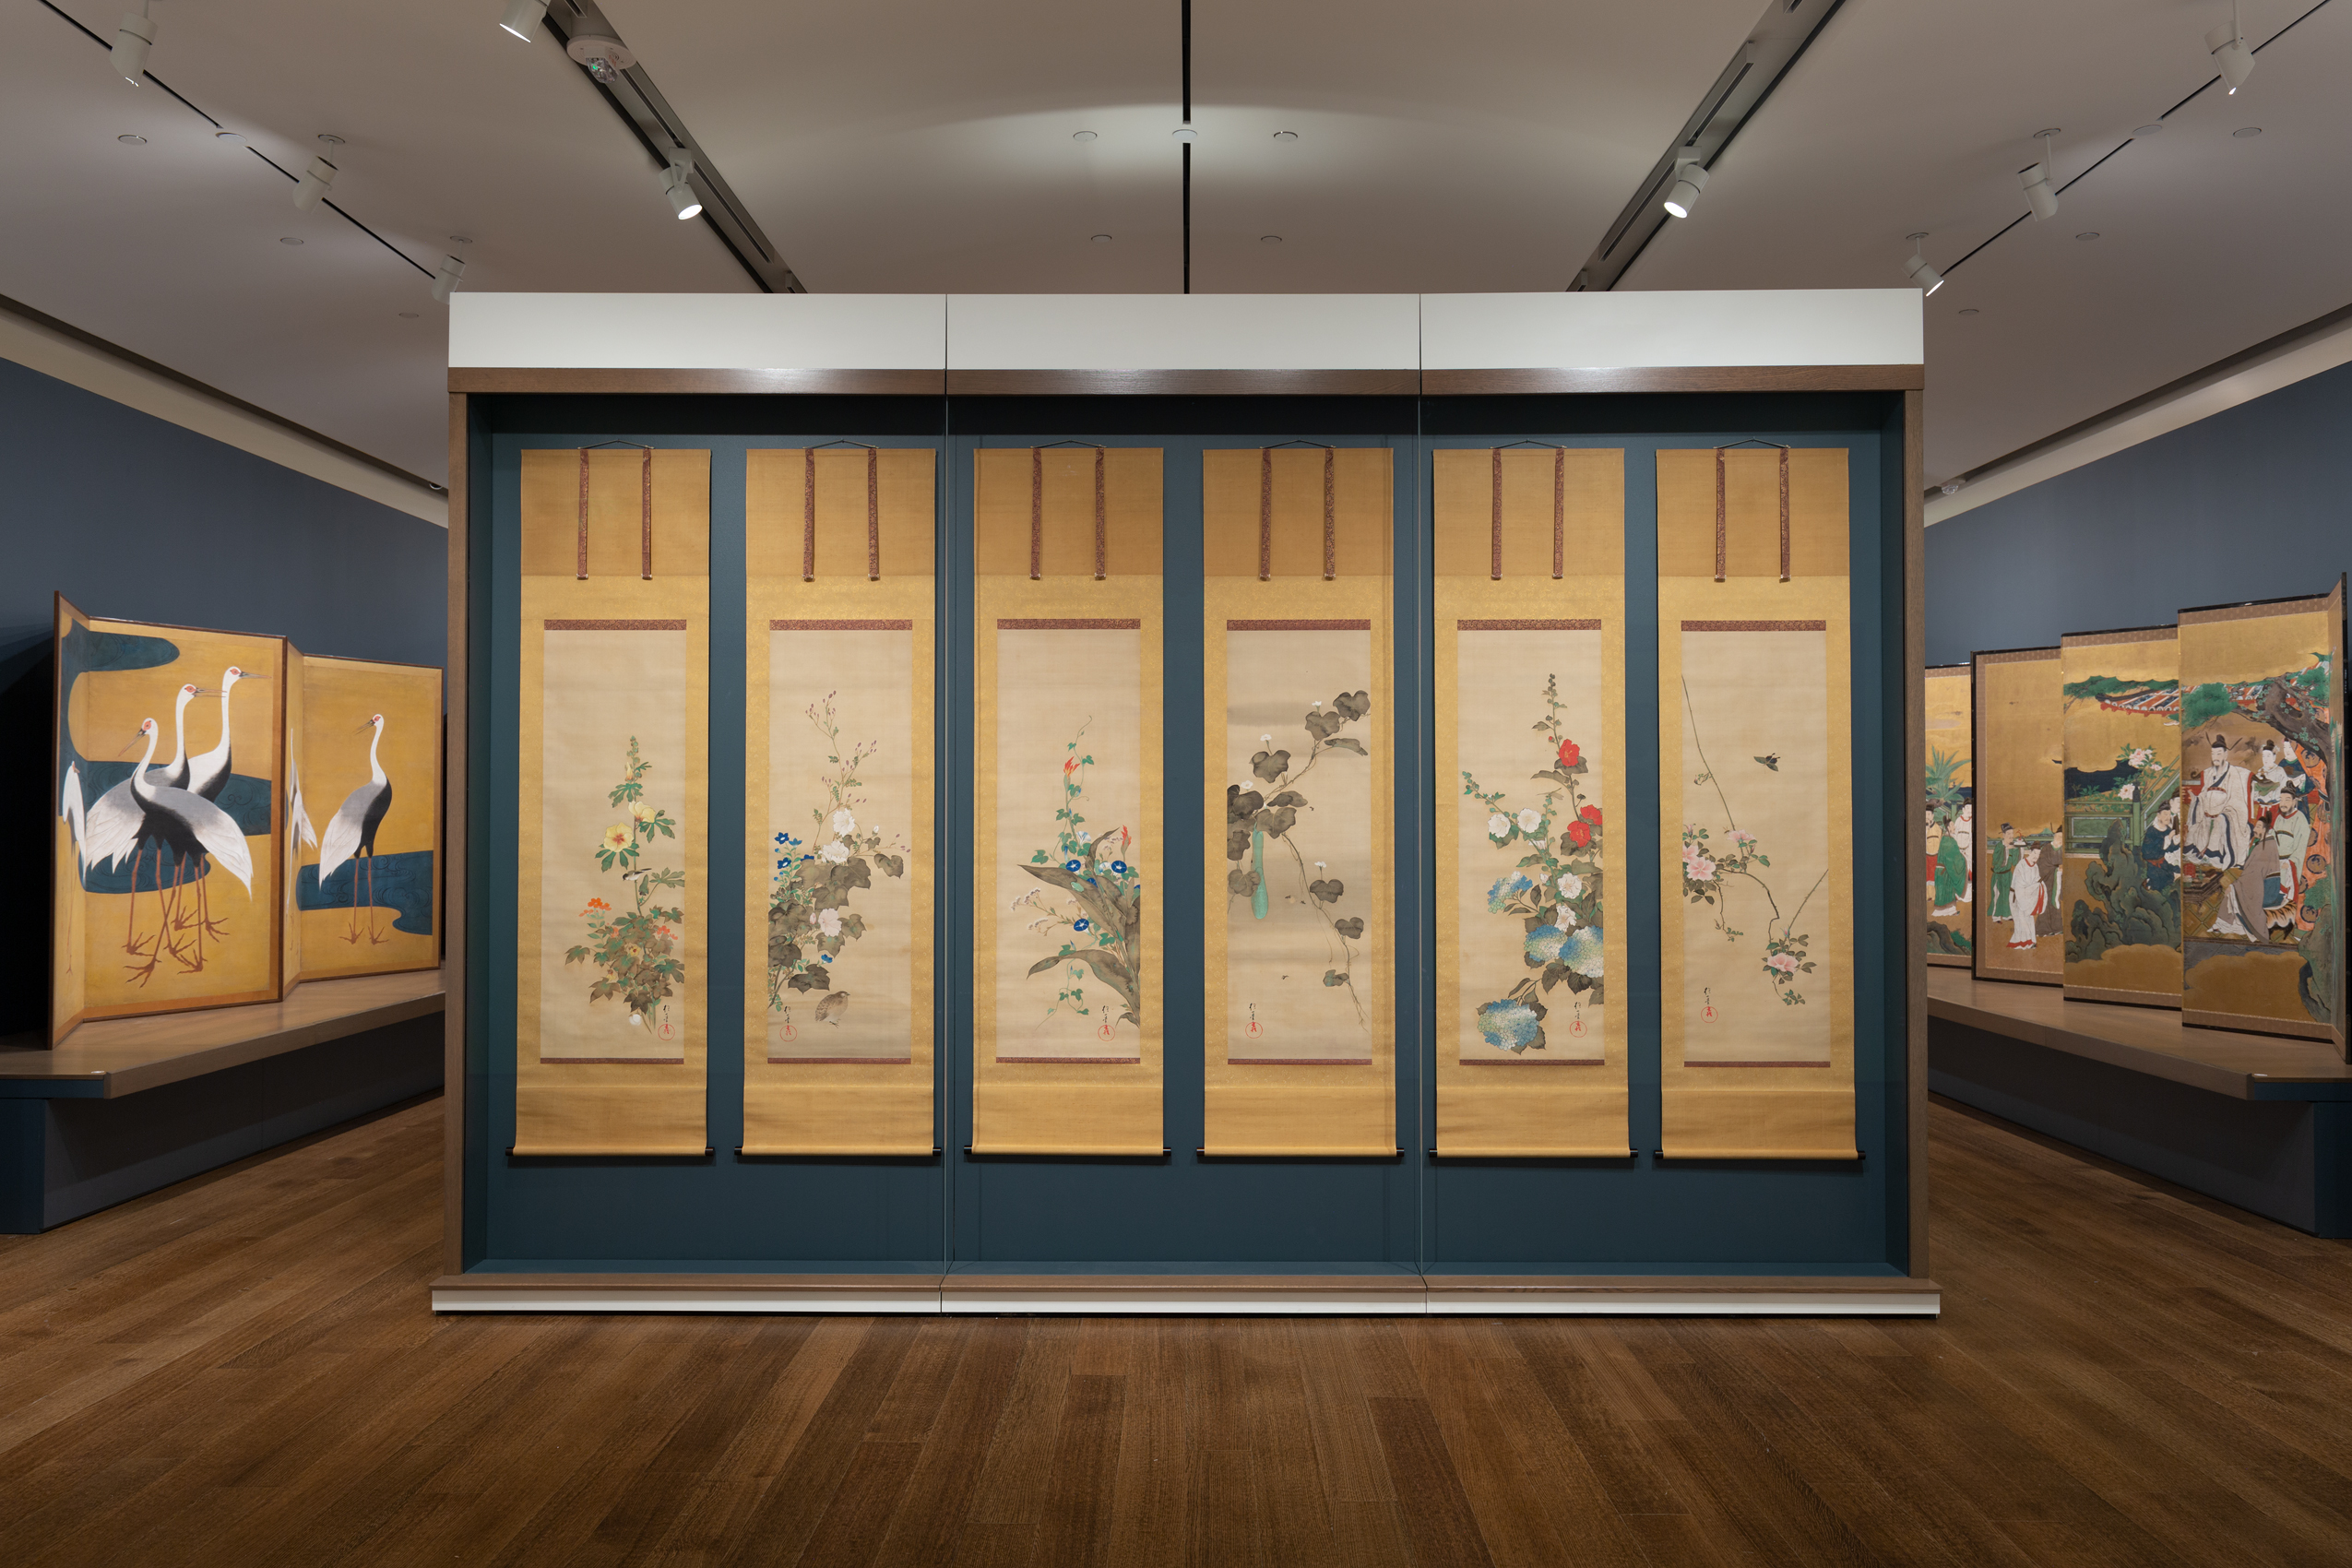 A gallery entrance features a large display case of six hanging scrolls, containing imagery of flowers and branches with leaves, flanked by large folding screens.